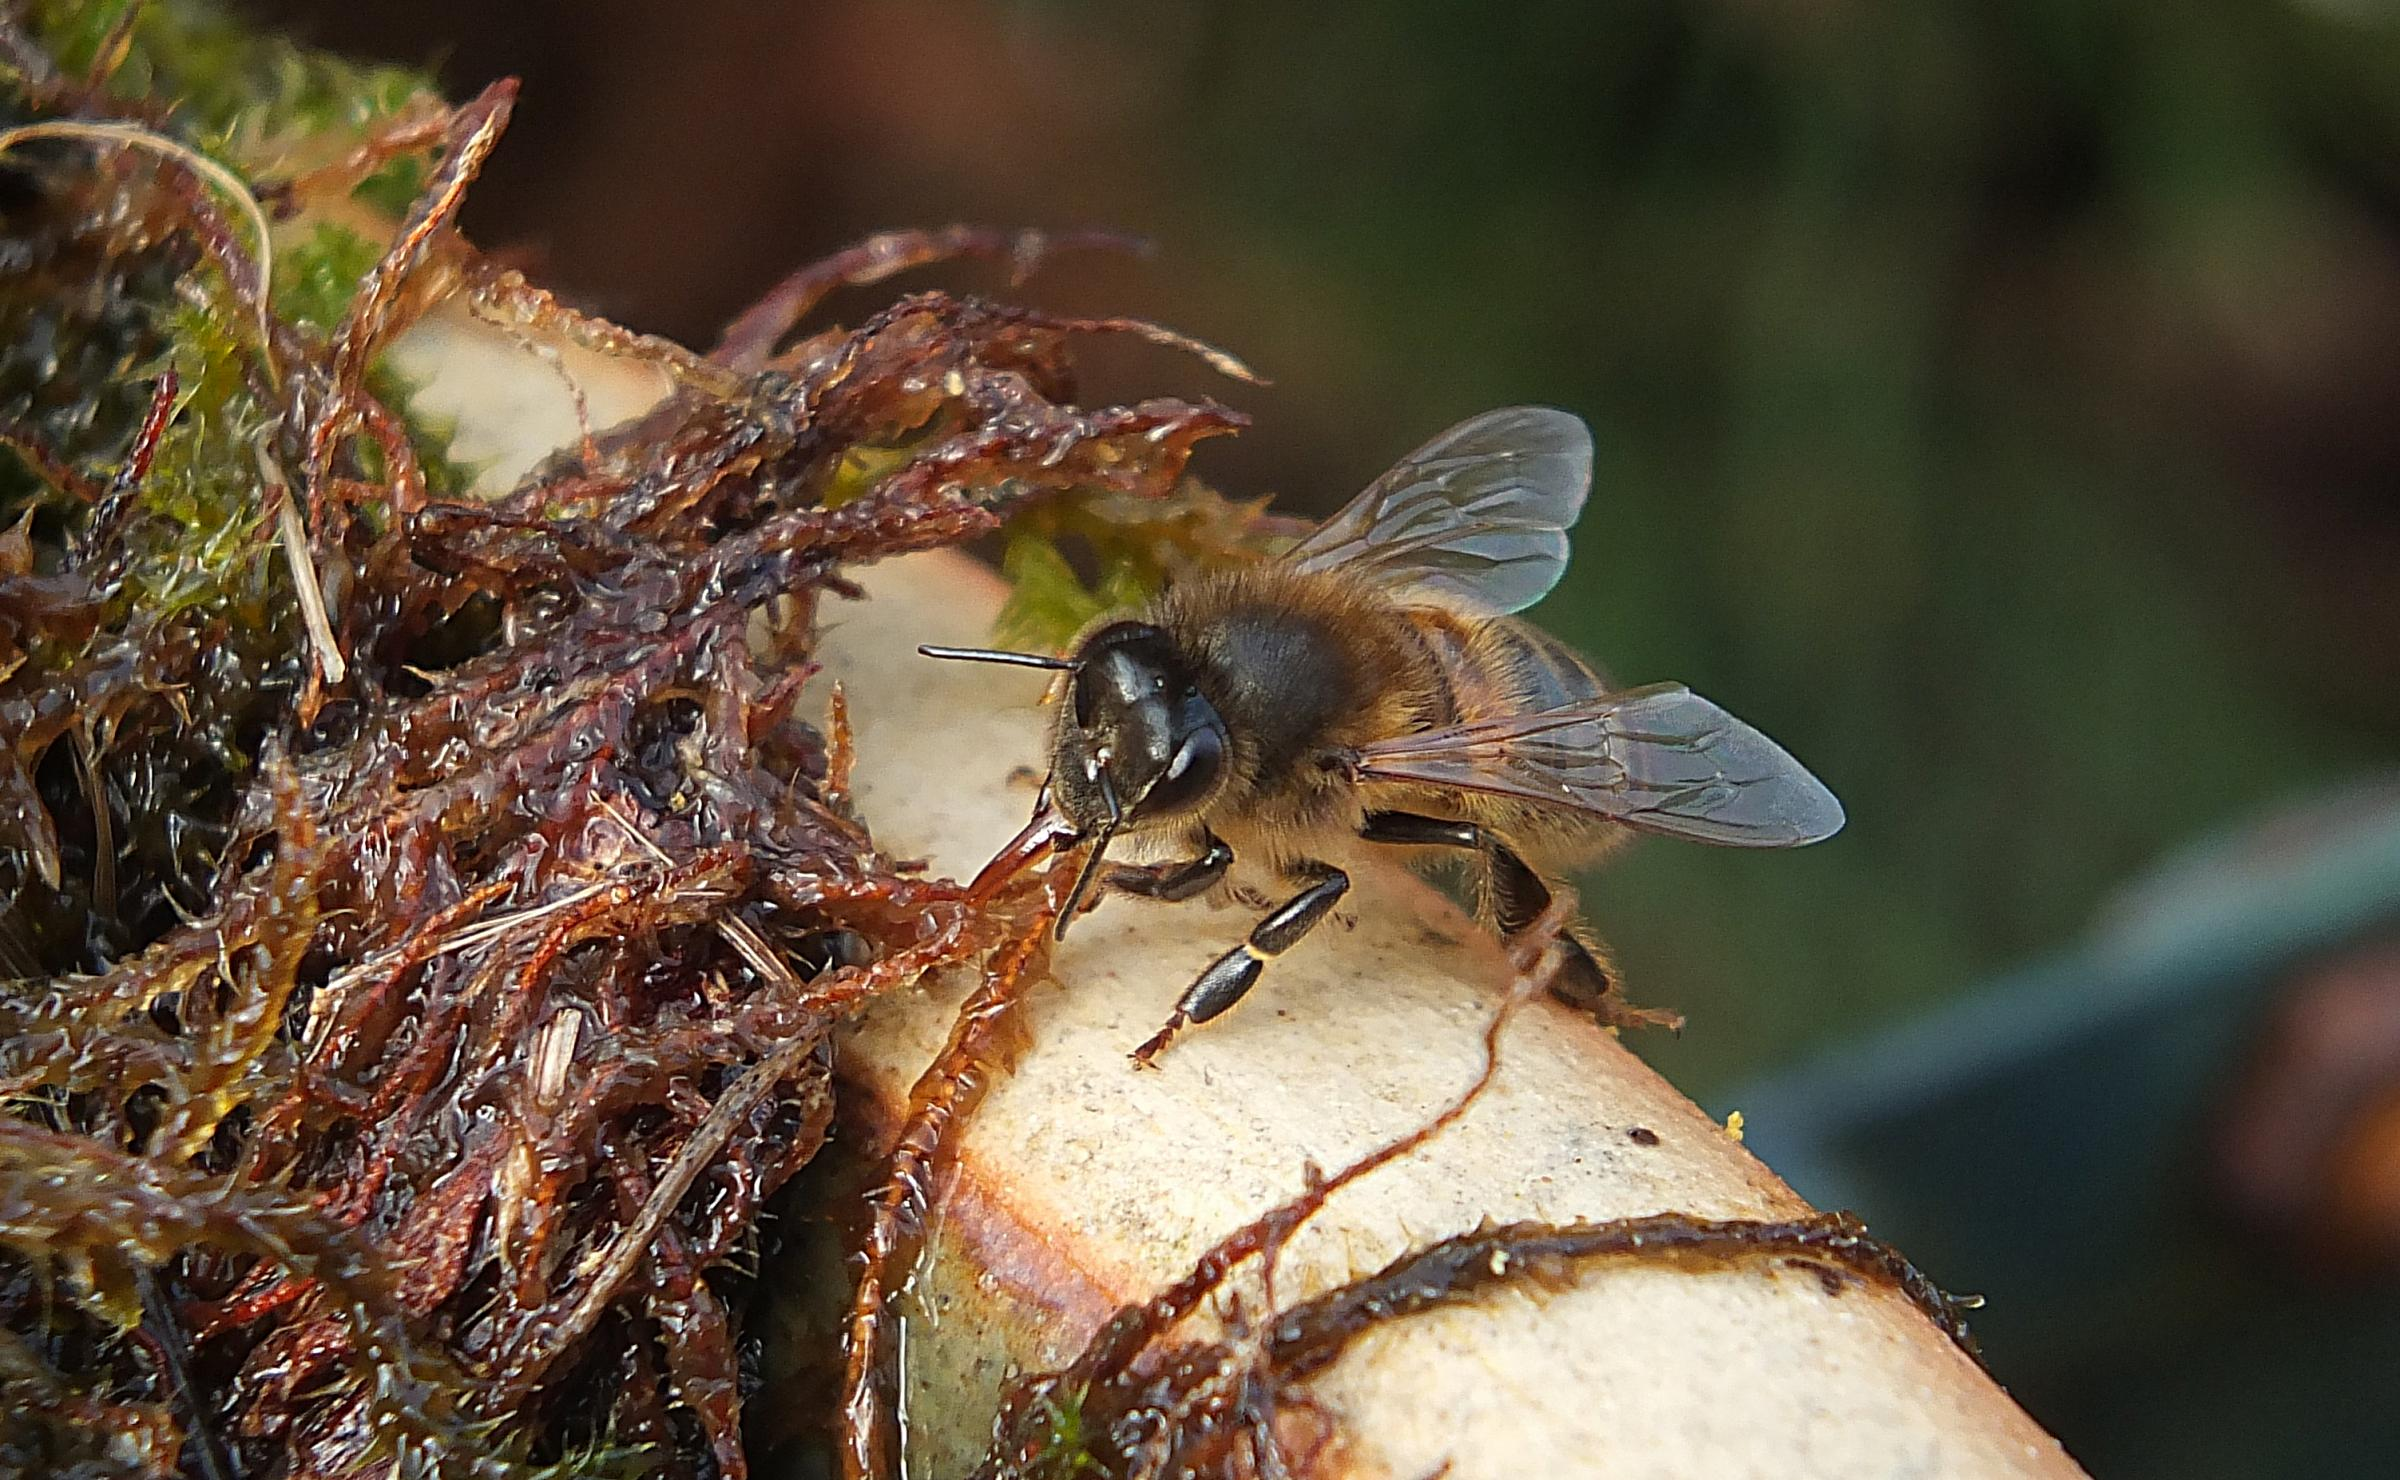 Bee drinking safely from a moss-lined dish. Photo: Linton Chilcott